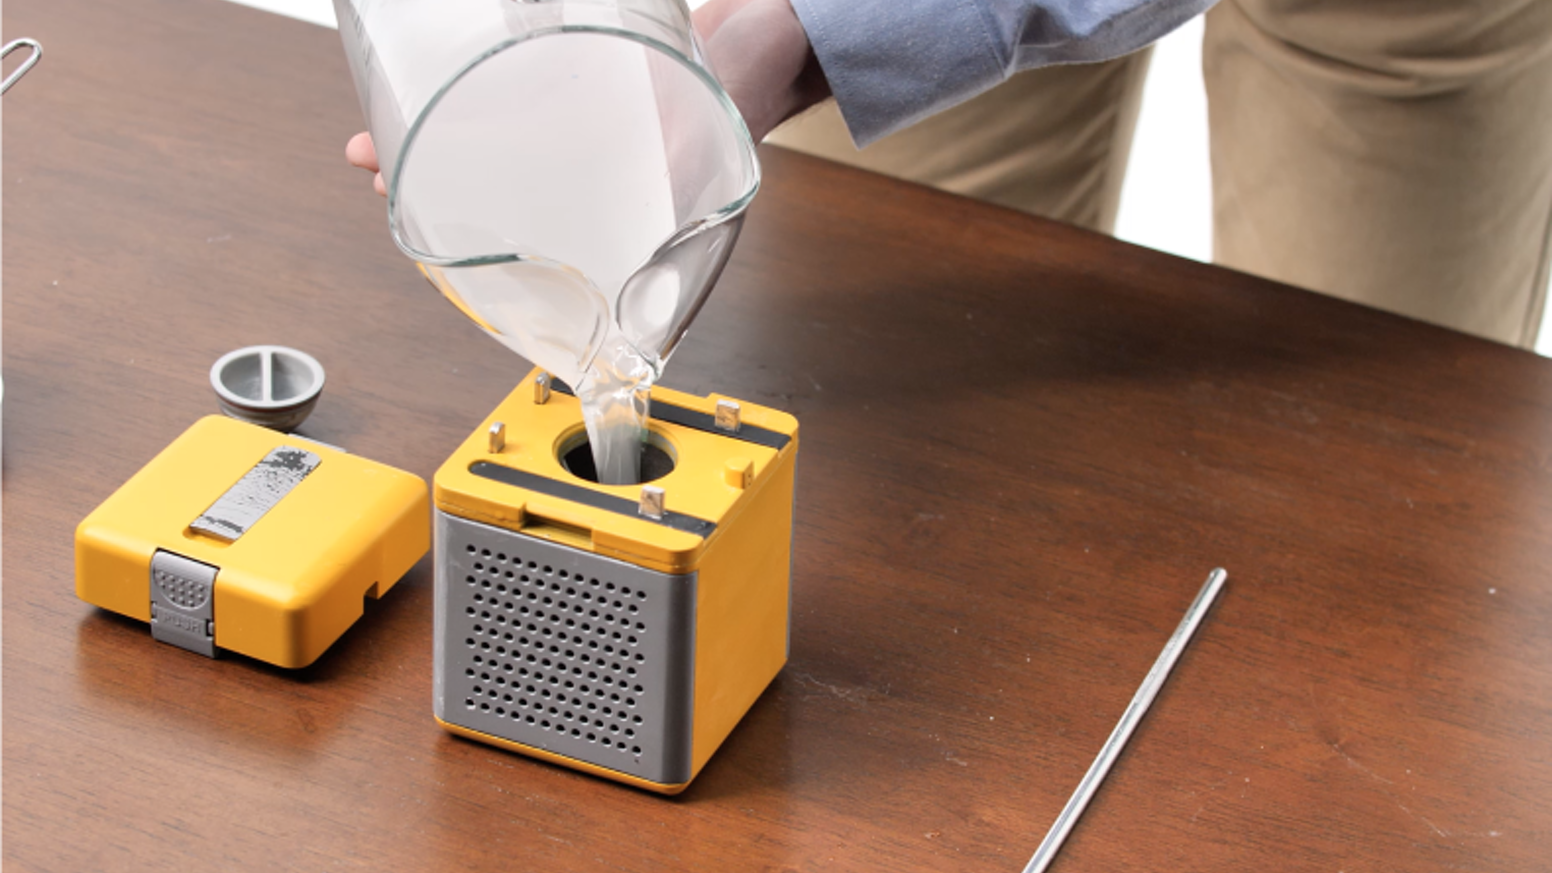 The HydraCell Power Cube provides instant power for light and charging by simply adding saltwater